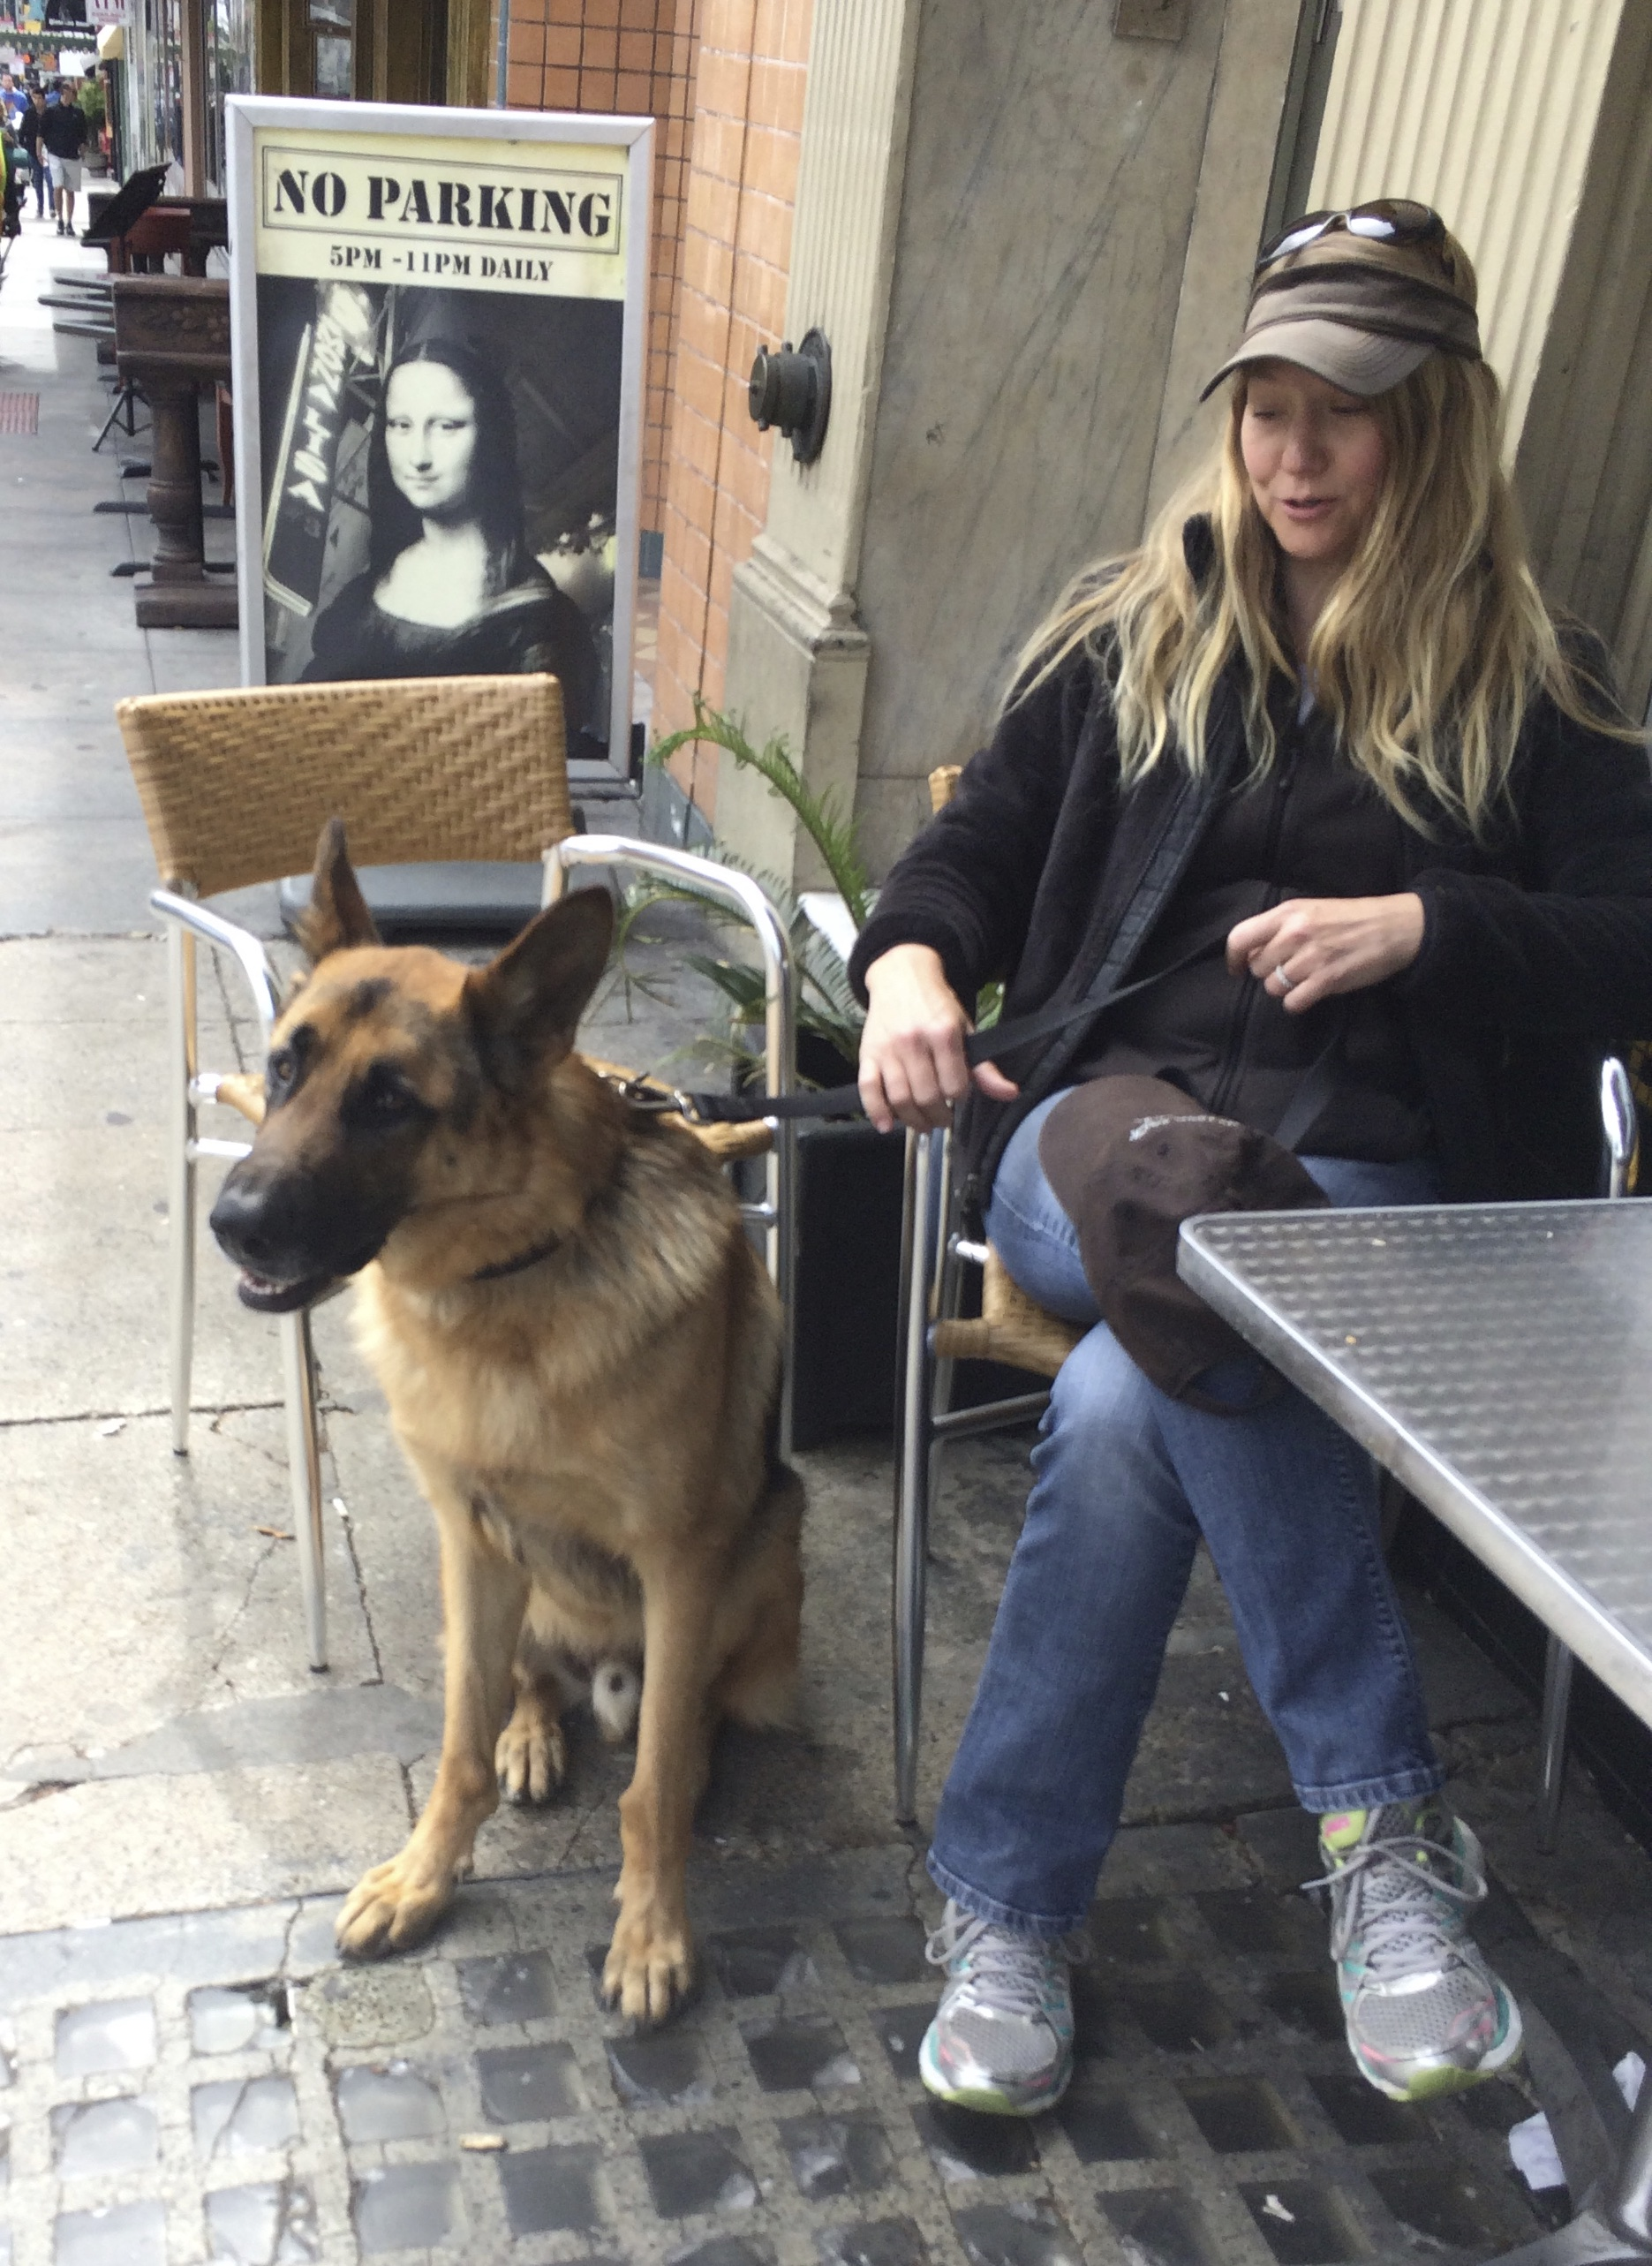 Woman Sitting With German Shepherd Who Is Pulling On His Leash